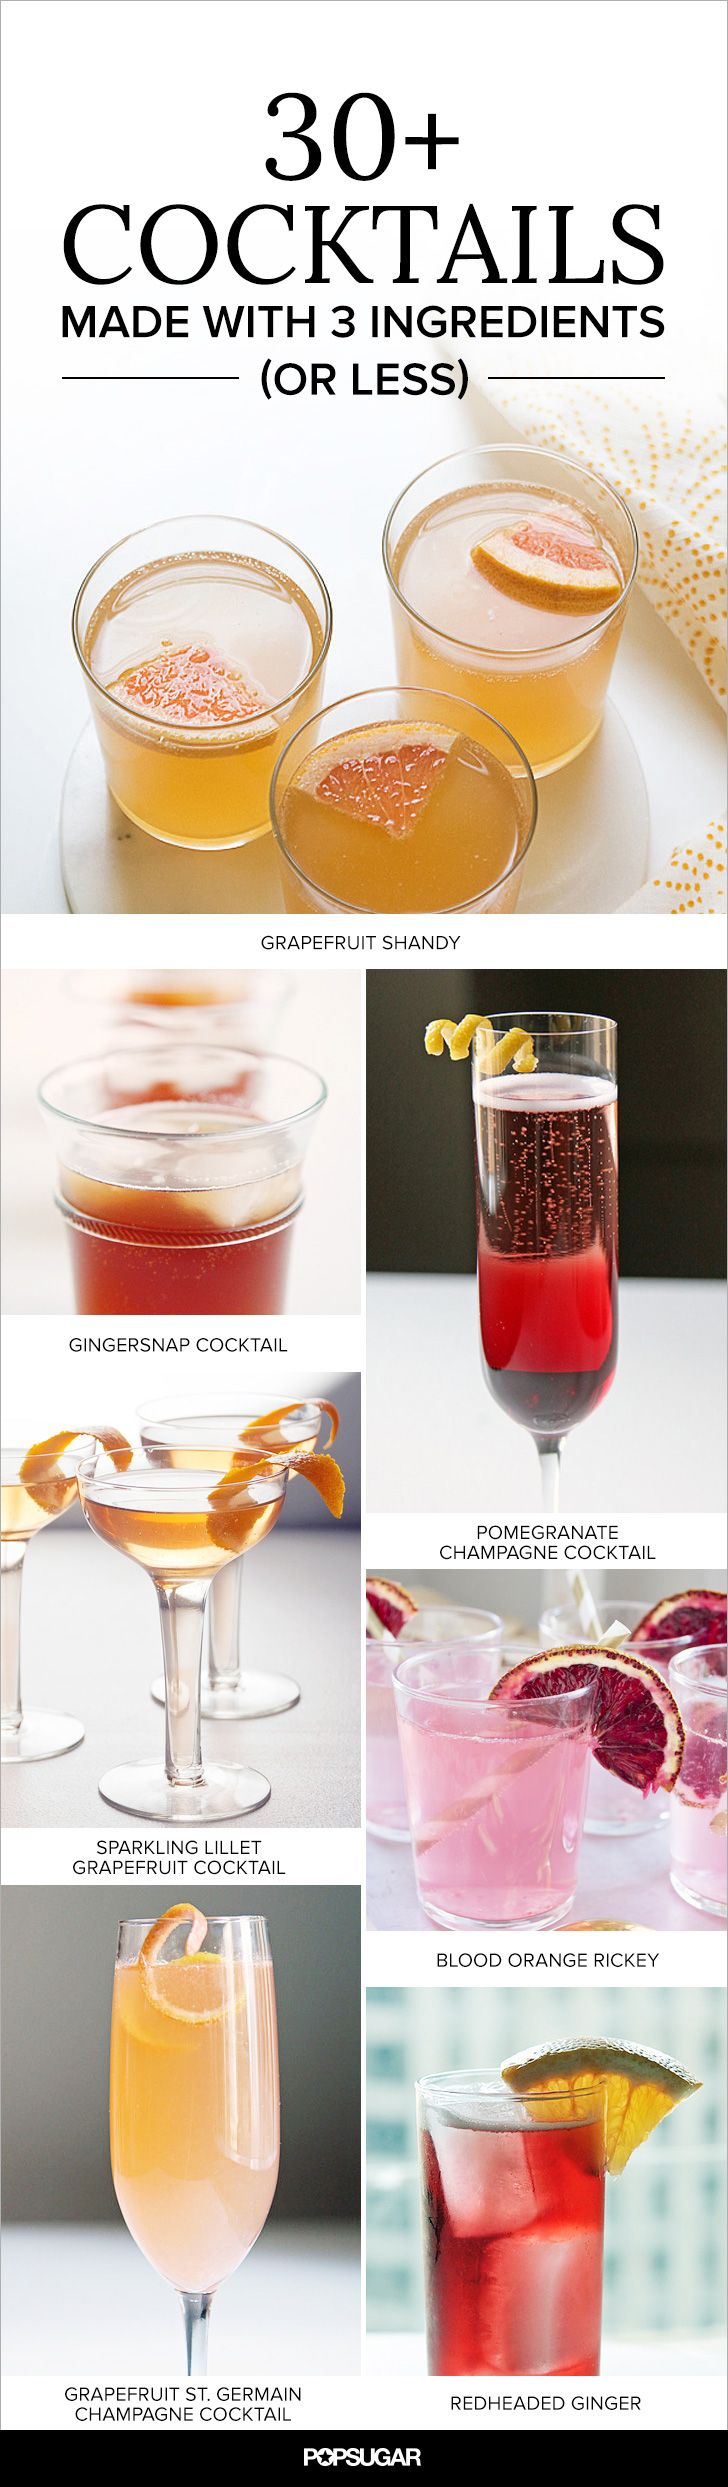 33 Crave Worthy Cocktails Made With 3 Ingredients Or Fewer